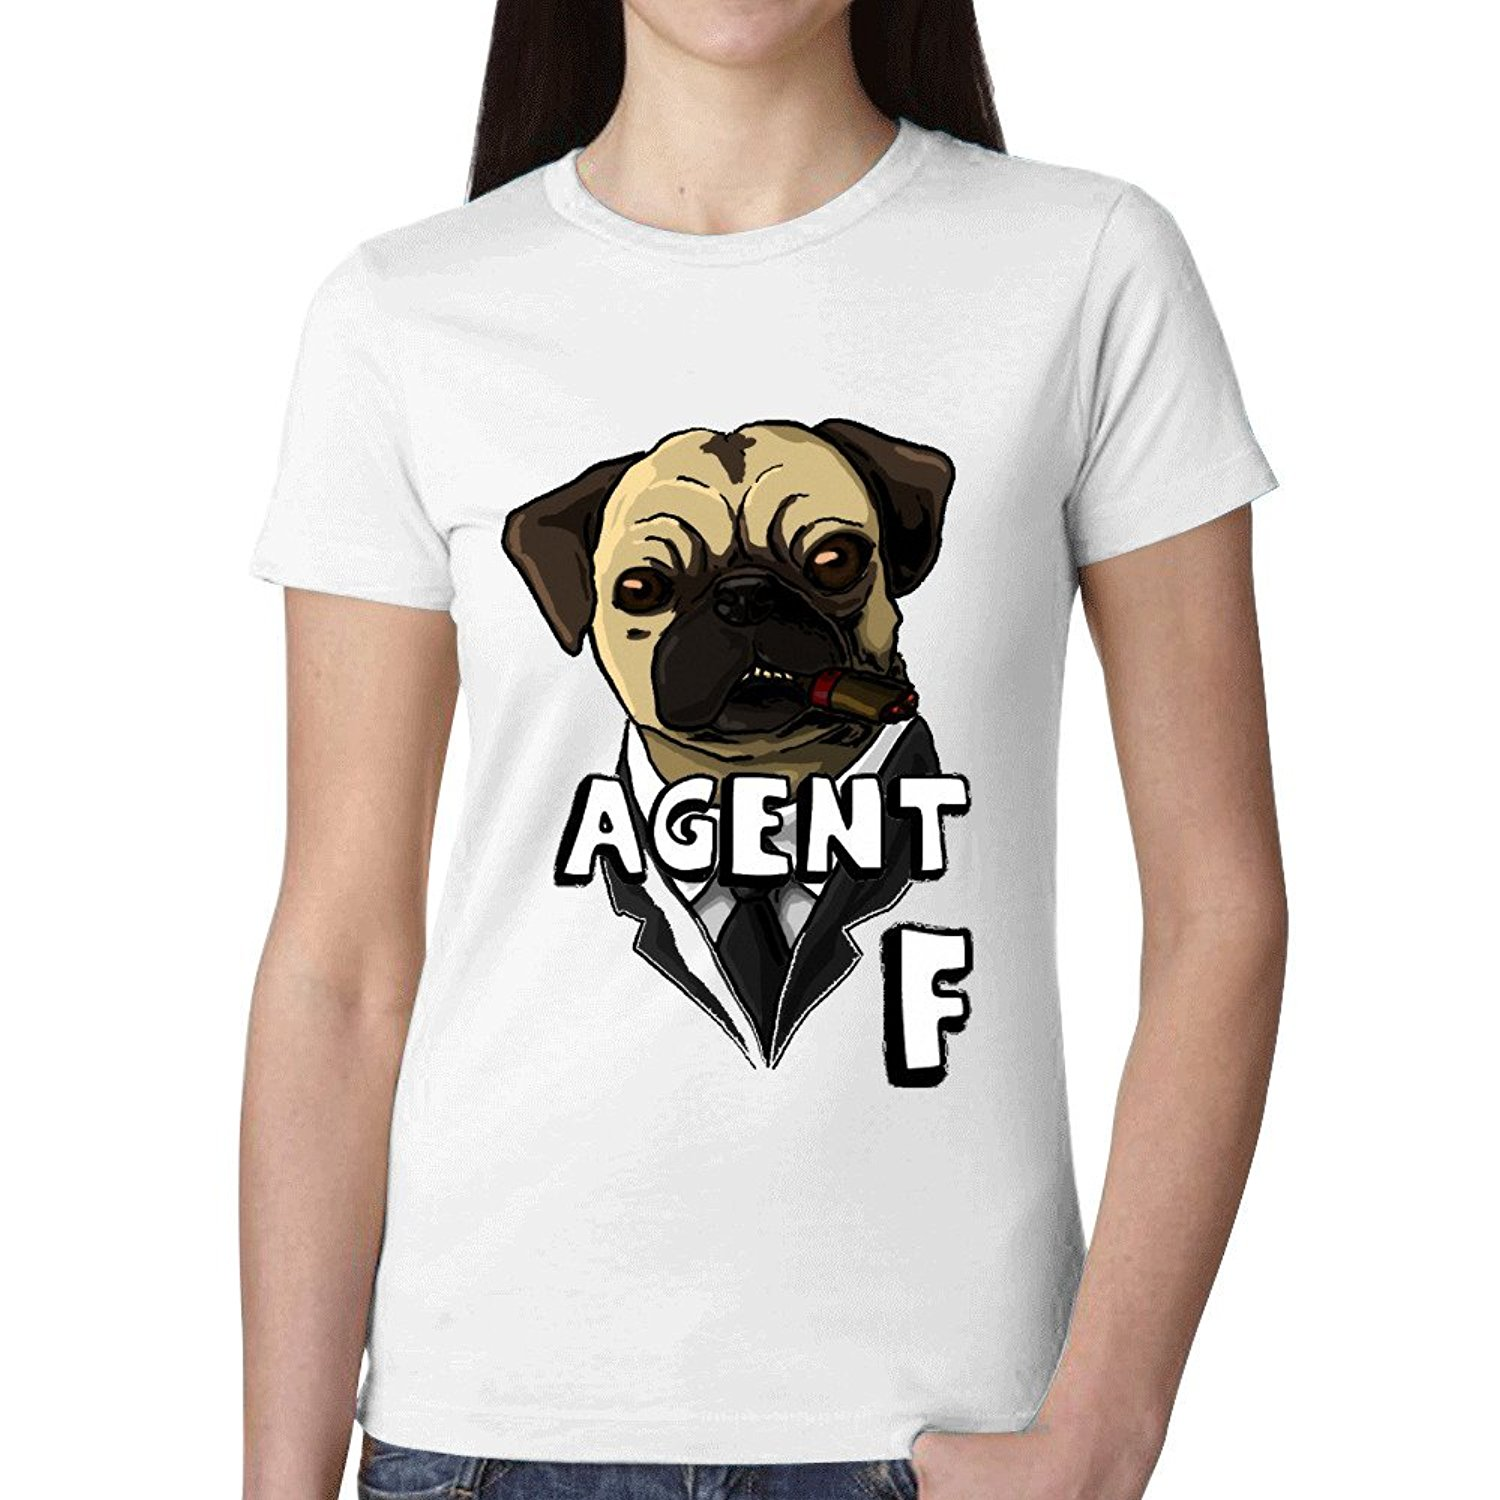 Design your own t-shirt for dogs - Premium Fitted Quality Tee Shirts Agent F Graphic T Shirts For Women Round Neck Summer Design